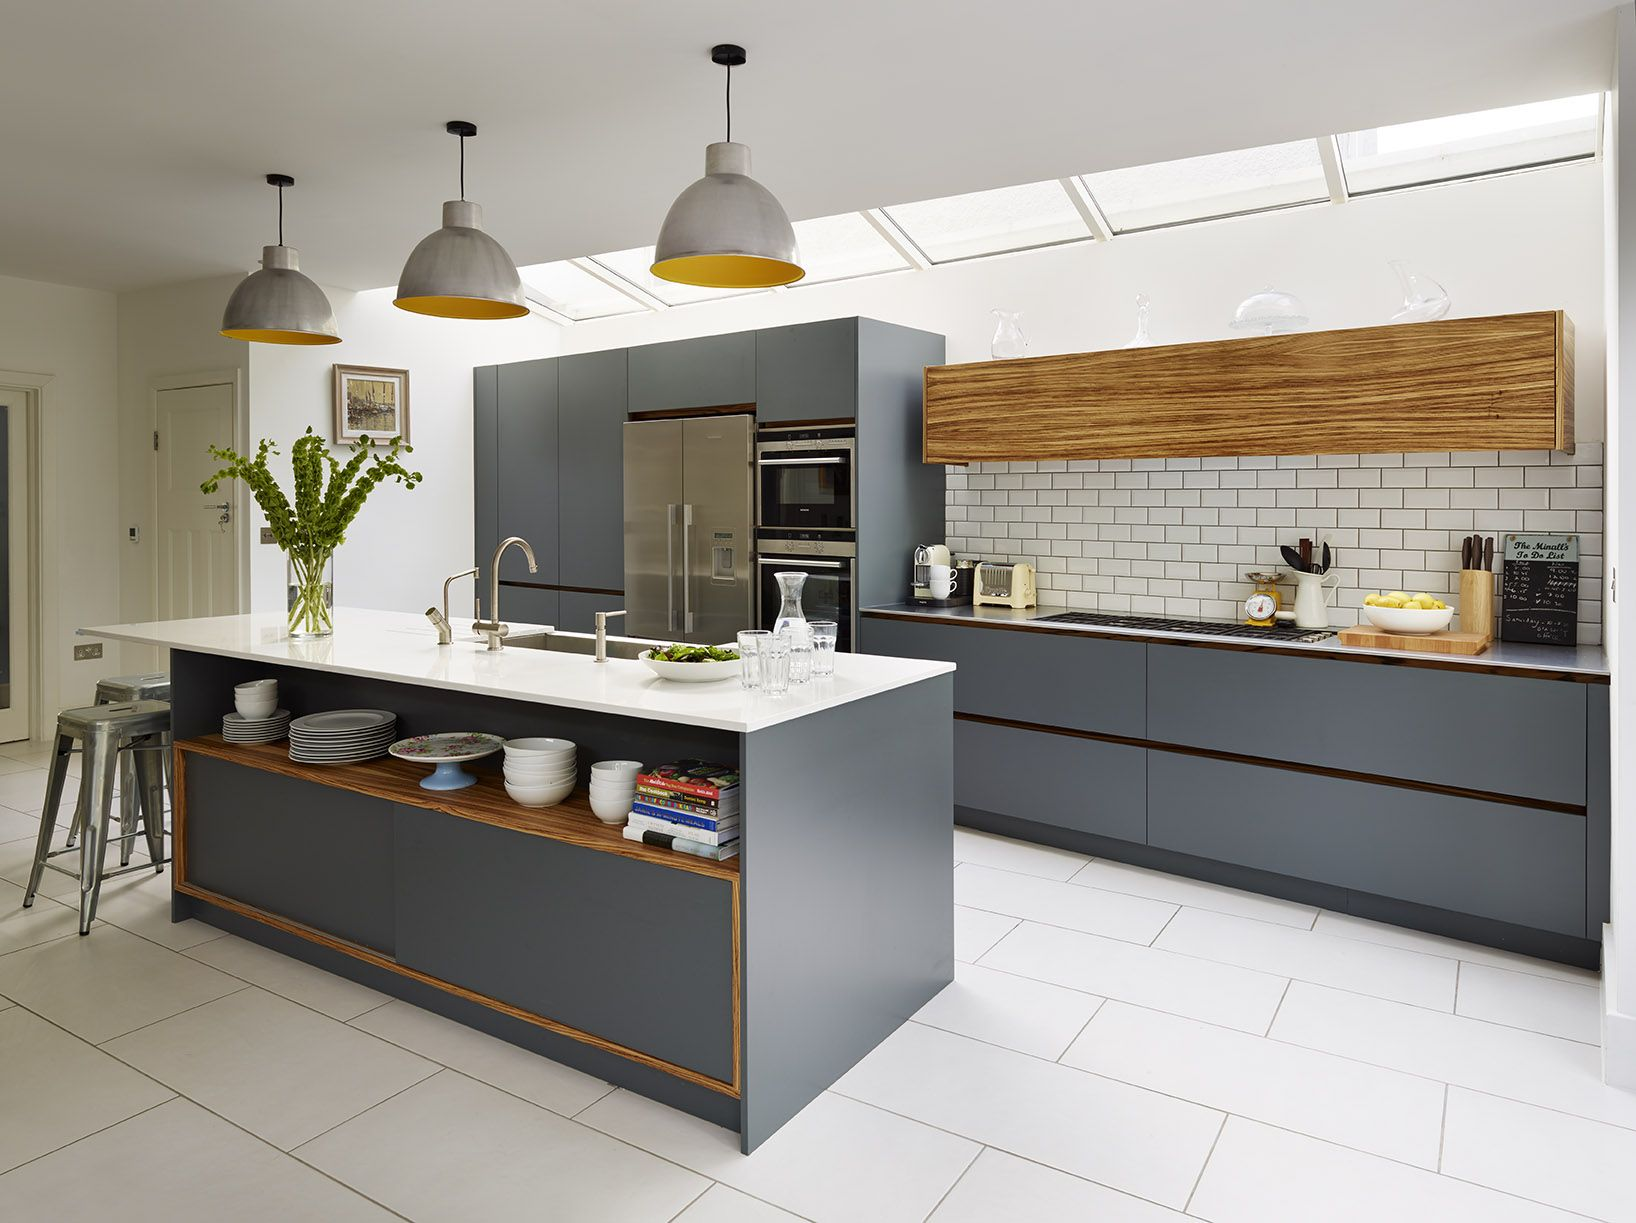 Best Roundhouse Urbo Bespoke Kitchen Kitchen Pinterest 640 x 480